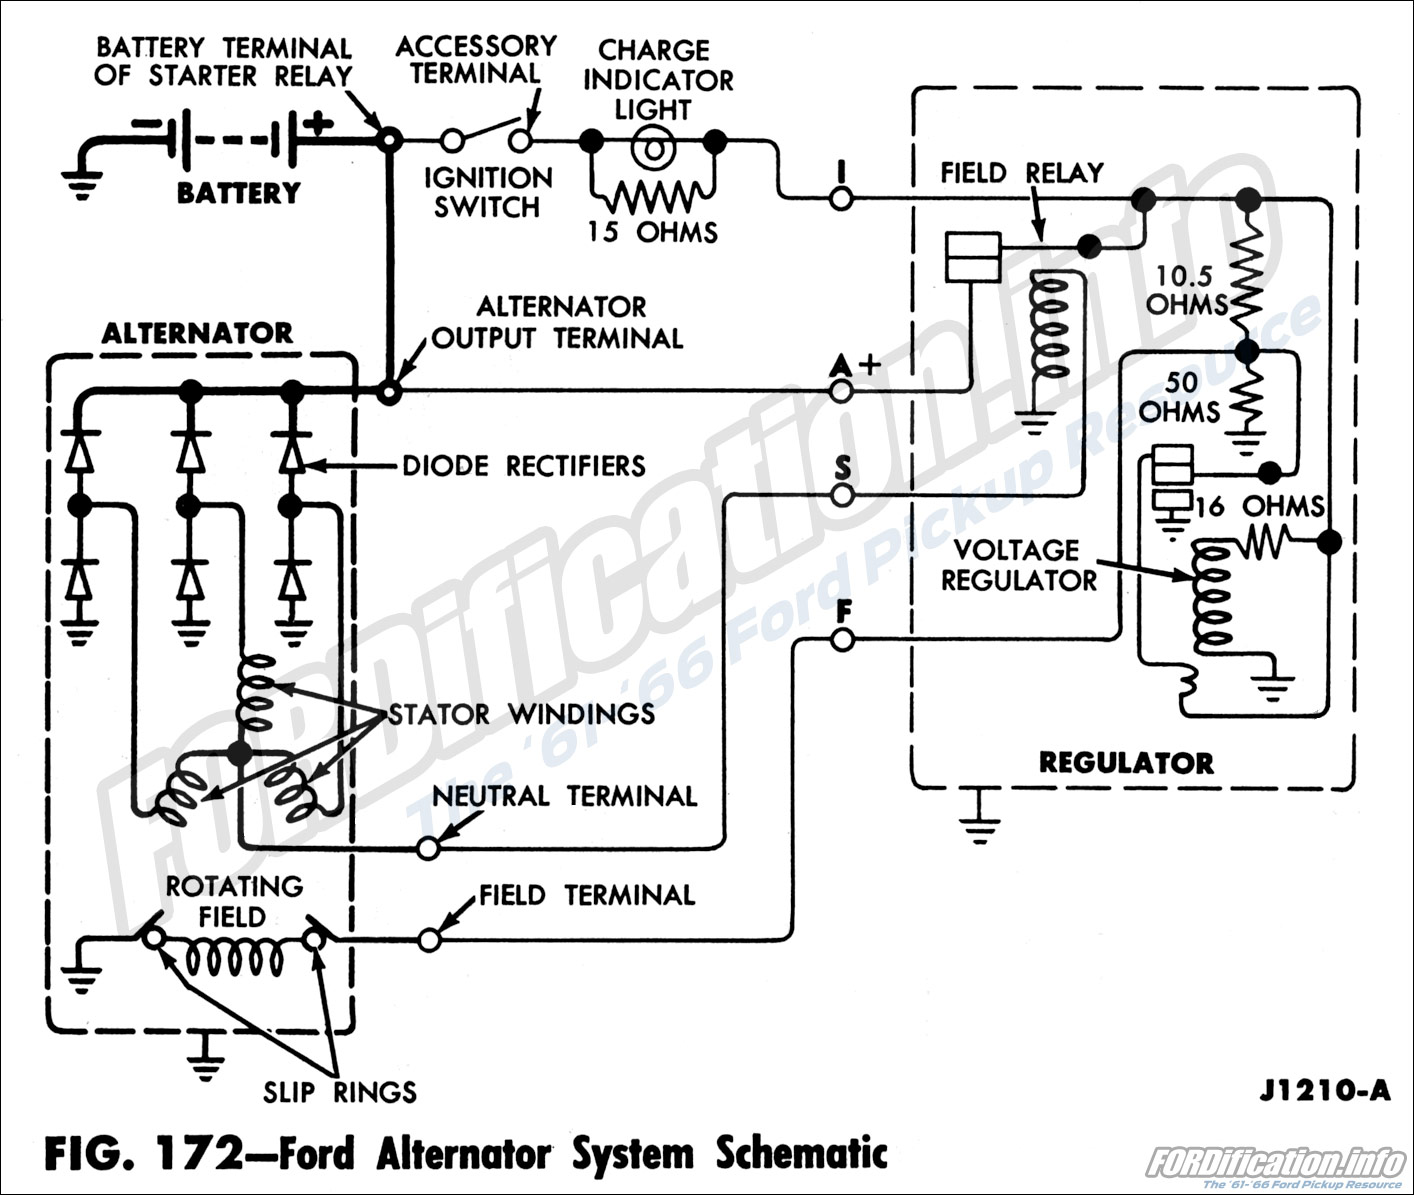 1963 ford generator wiring diagram 1963 ford truck wiring diagrams - fordification.info - the ... 1963 ford f100 wiring diagram #9